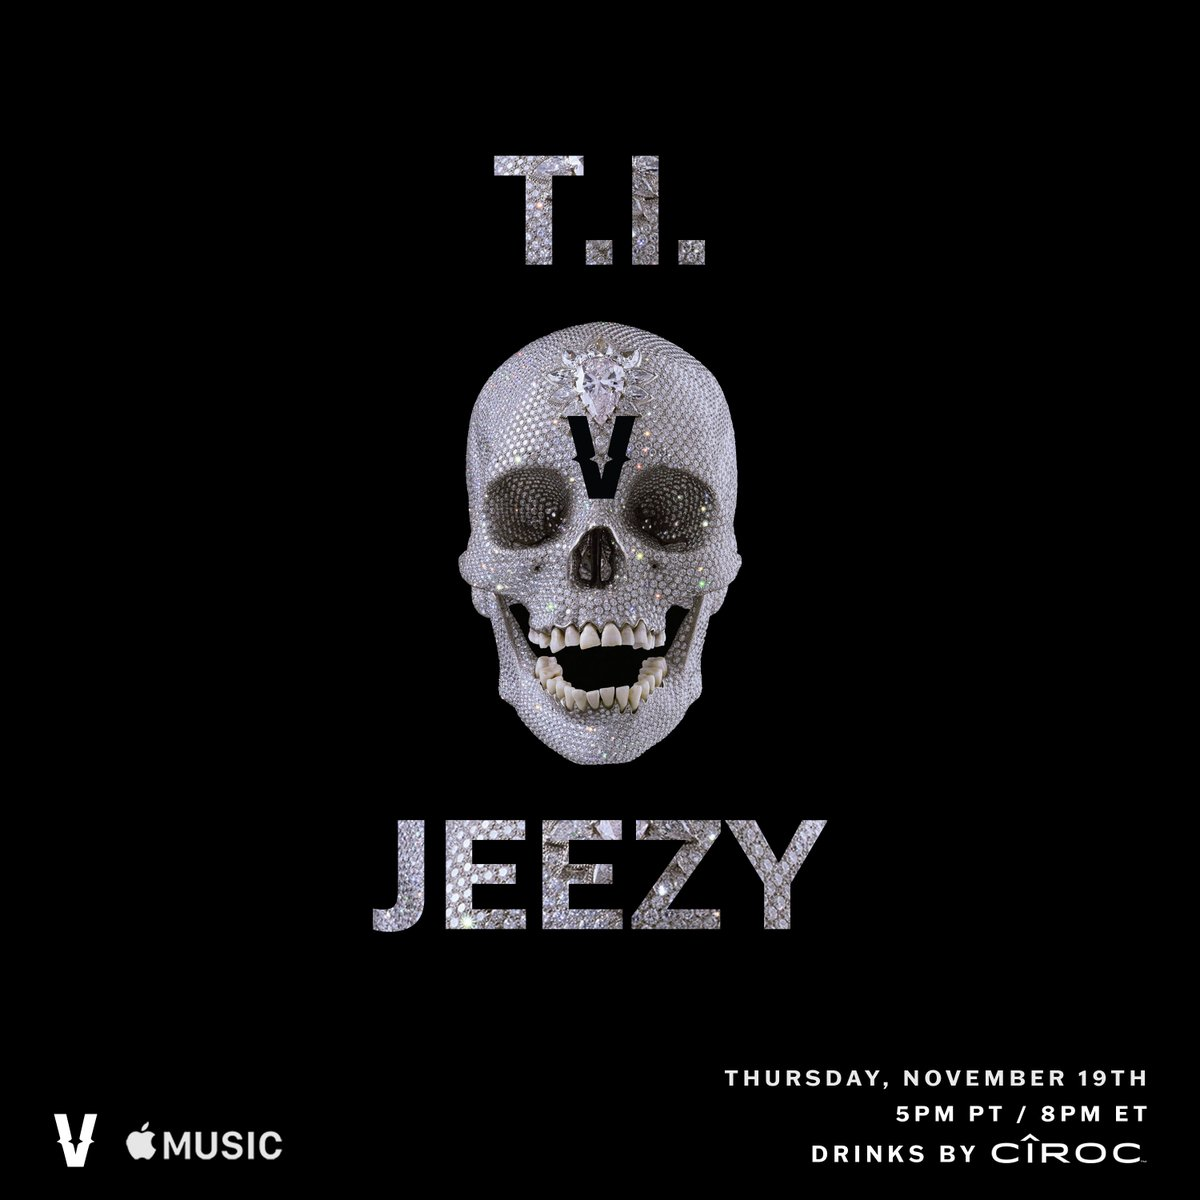 #VERZUZ is back with Season 2 ‼️ T.I. vs Jeezy 💥 Let the celebrations begin 🏆🏆🏆  Thursday, November 19th, 5PM PT/8PM ET.  Watch it on ourIG or in HD on@AppleMusic. Drinks by@CIROC. https://t.co/azgvMt4nT2